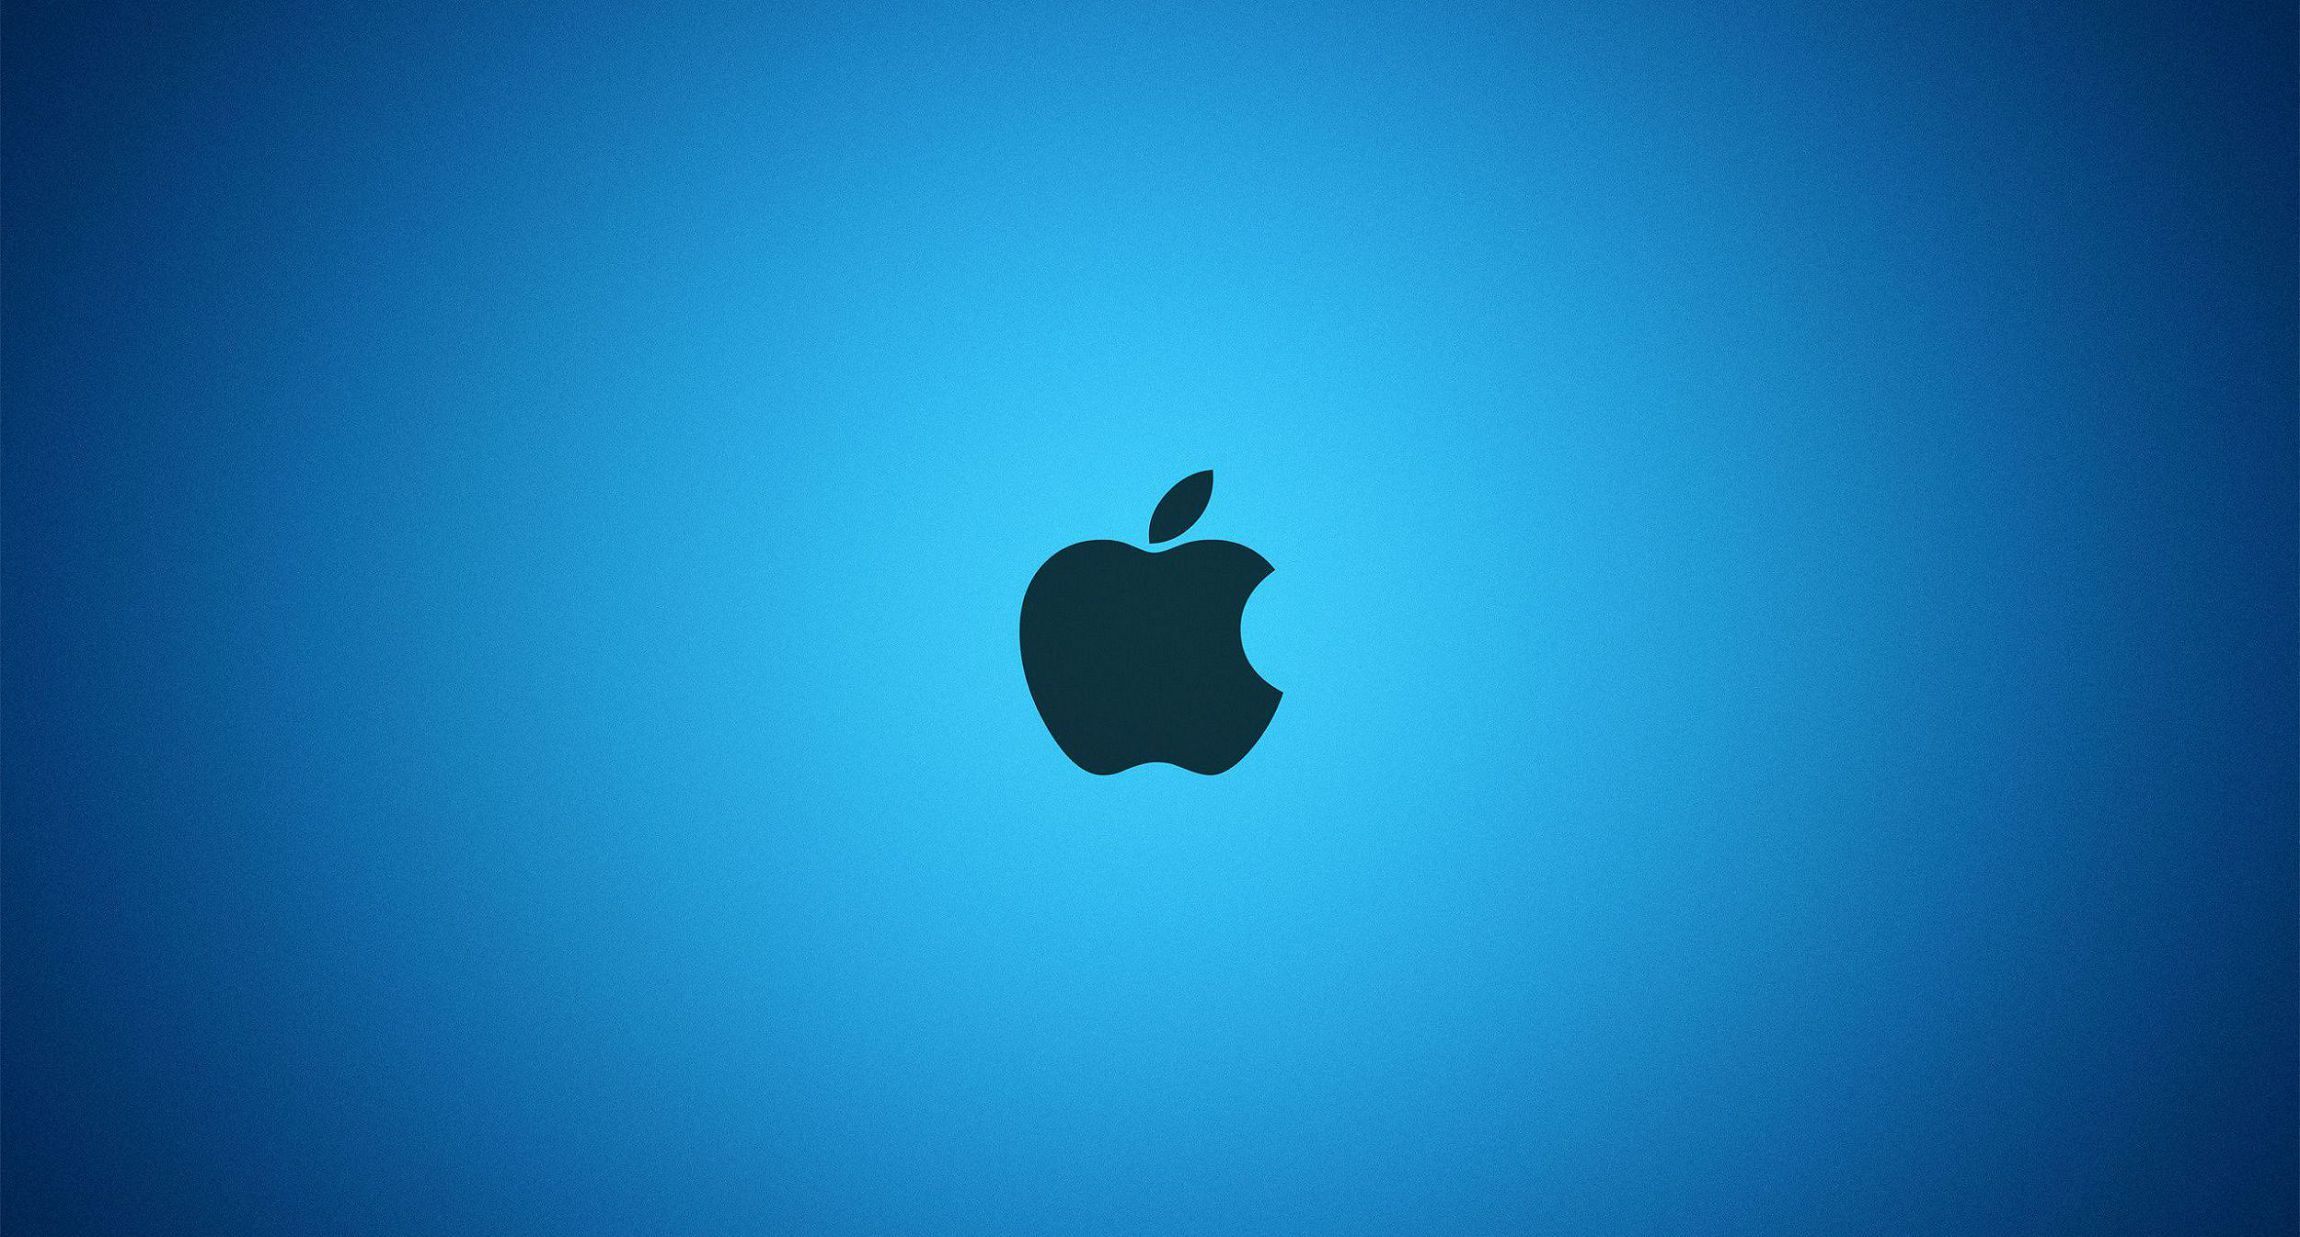 Apple Logo High Definition Wallpapers